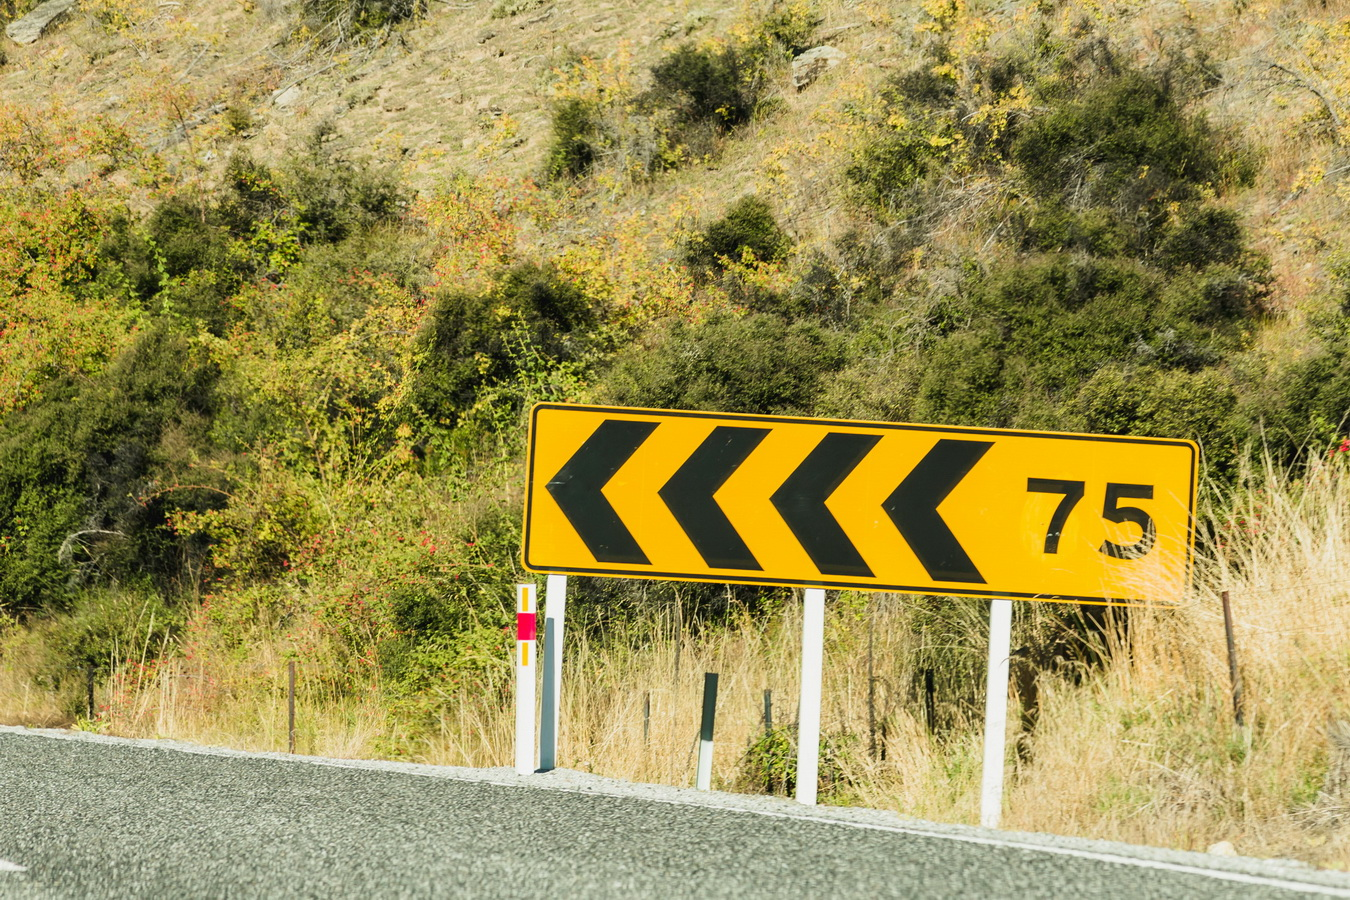 turn left, road, car, road sign, new Zealand